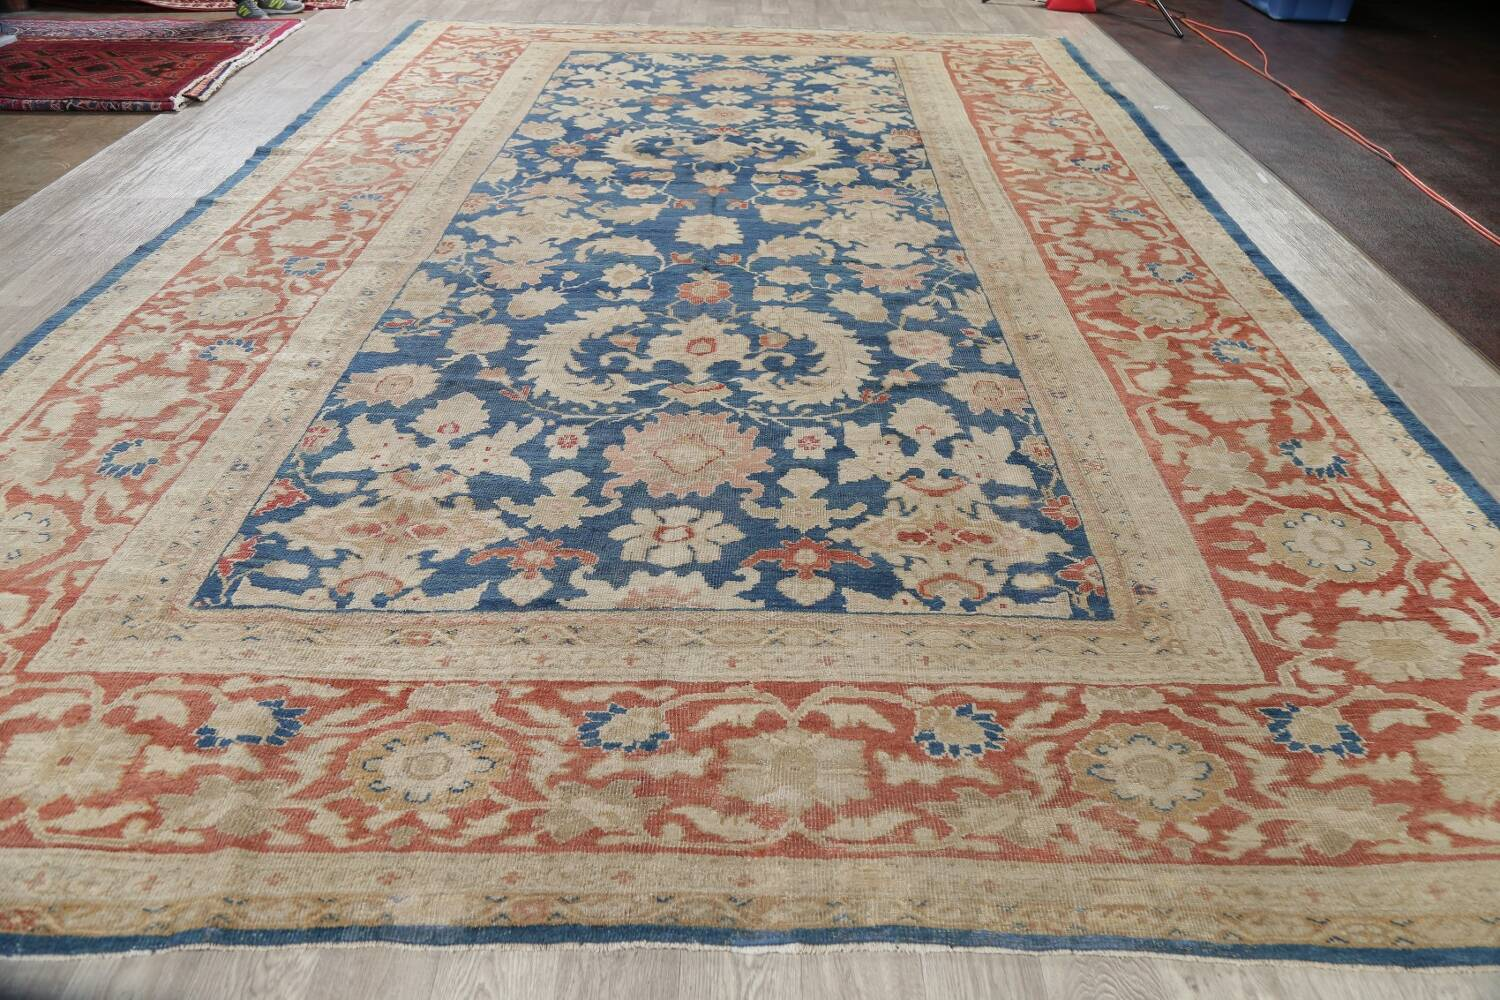 Antique Floral Sultanabad Persian Area Rug 10x16 Large image 18